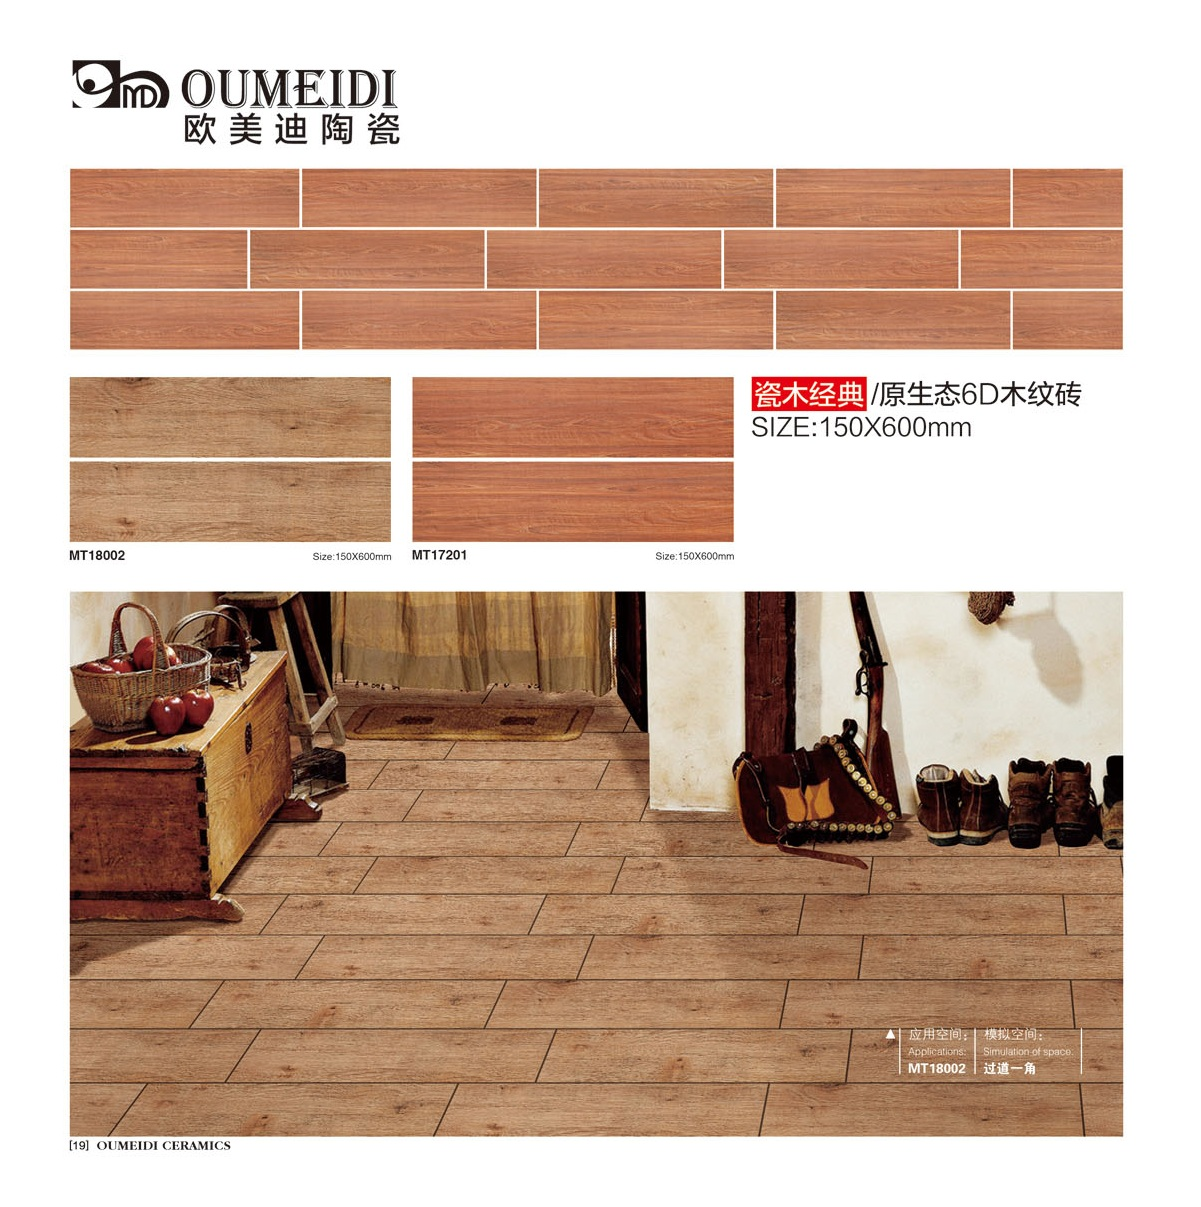 Wood Design Ceramic Tile Rustic ceramic Tile Floor Porcelain Tile